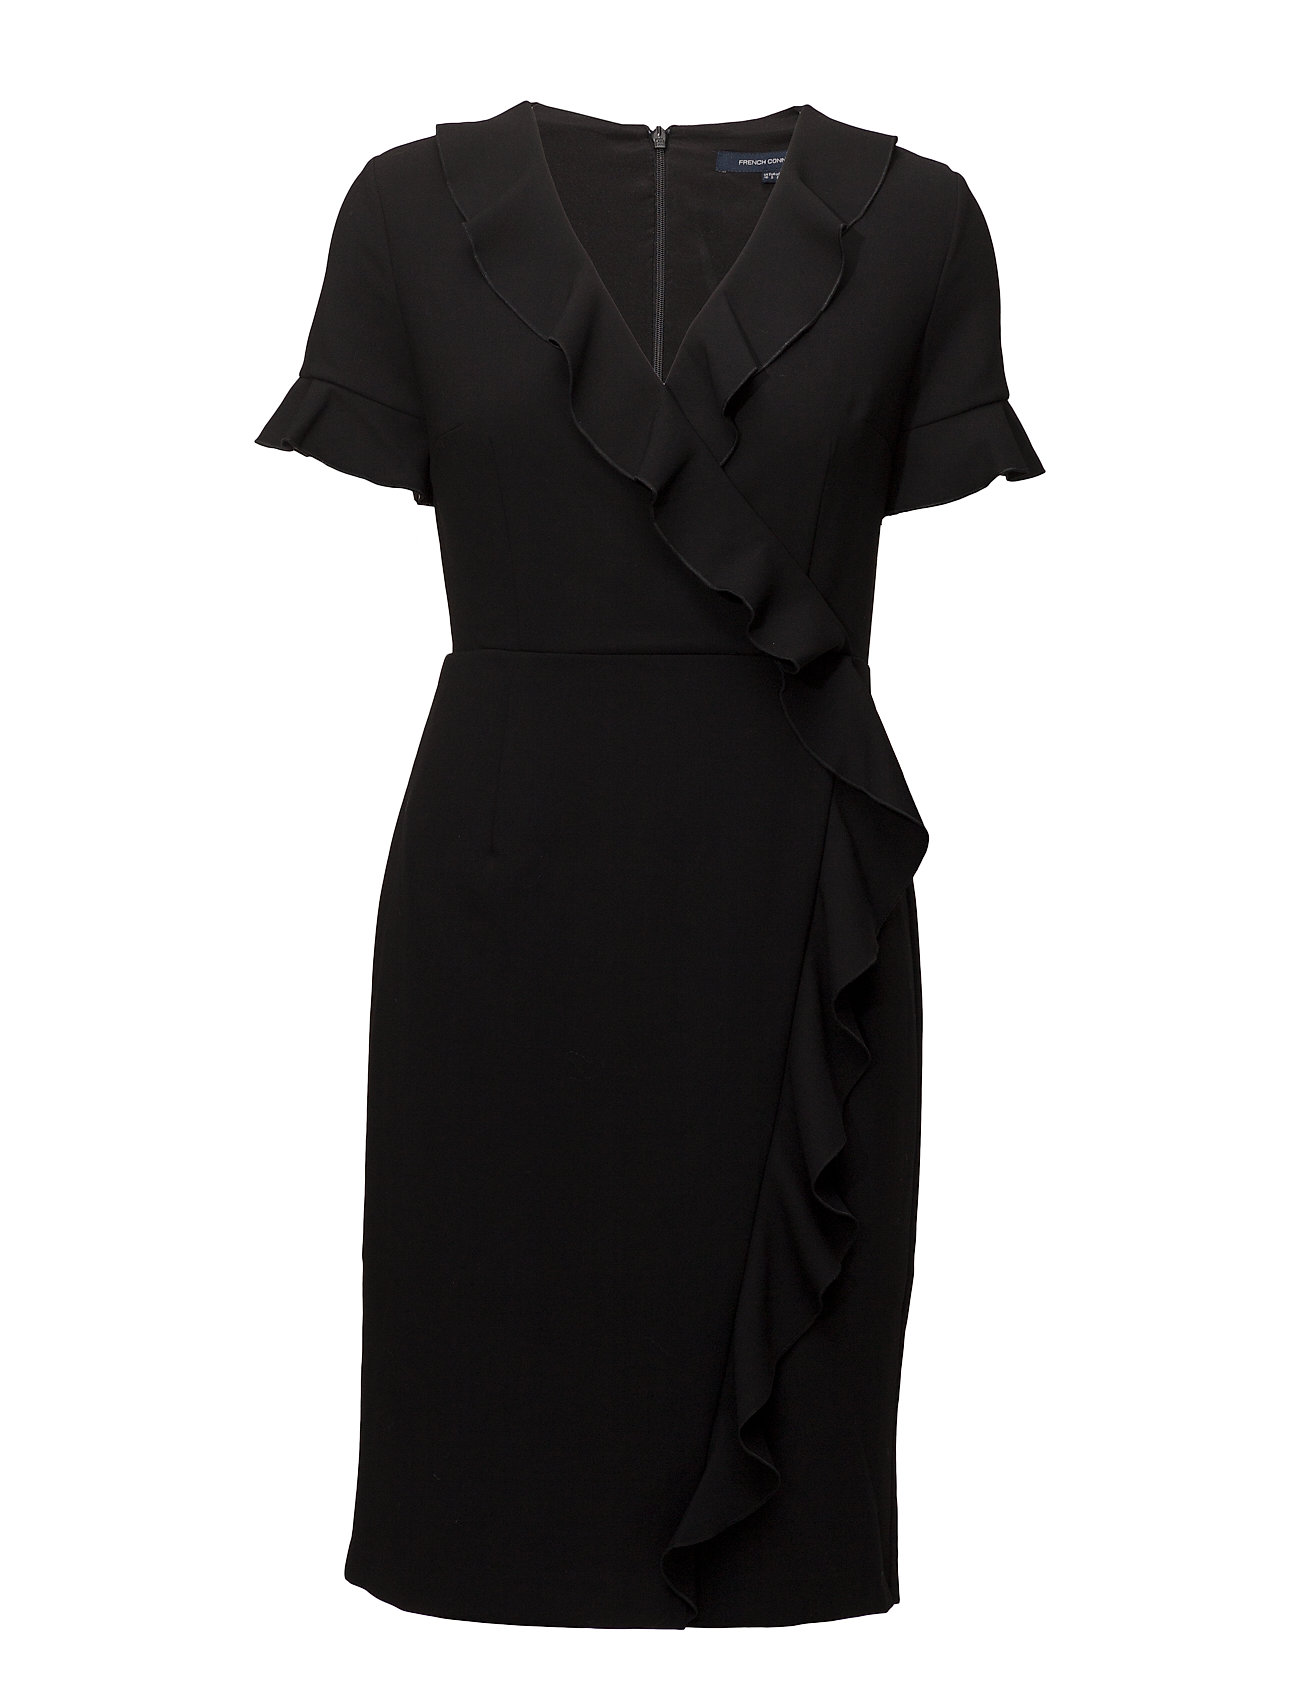 French Connection ALIANOR STRETCH VNCK FRILL DRS - BLACK